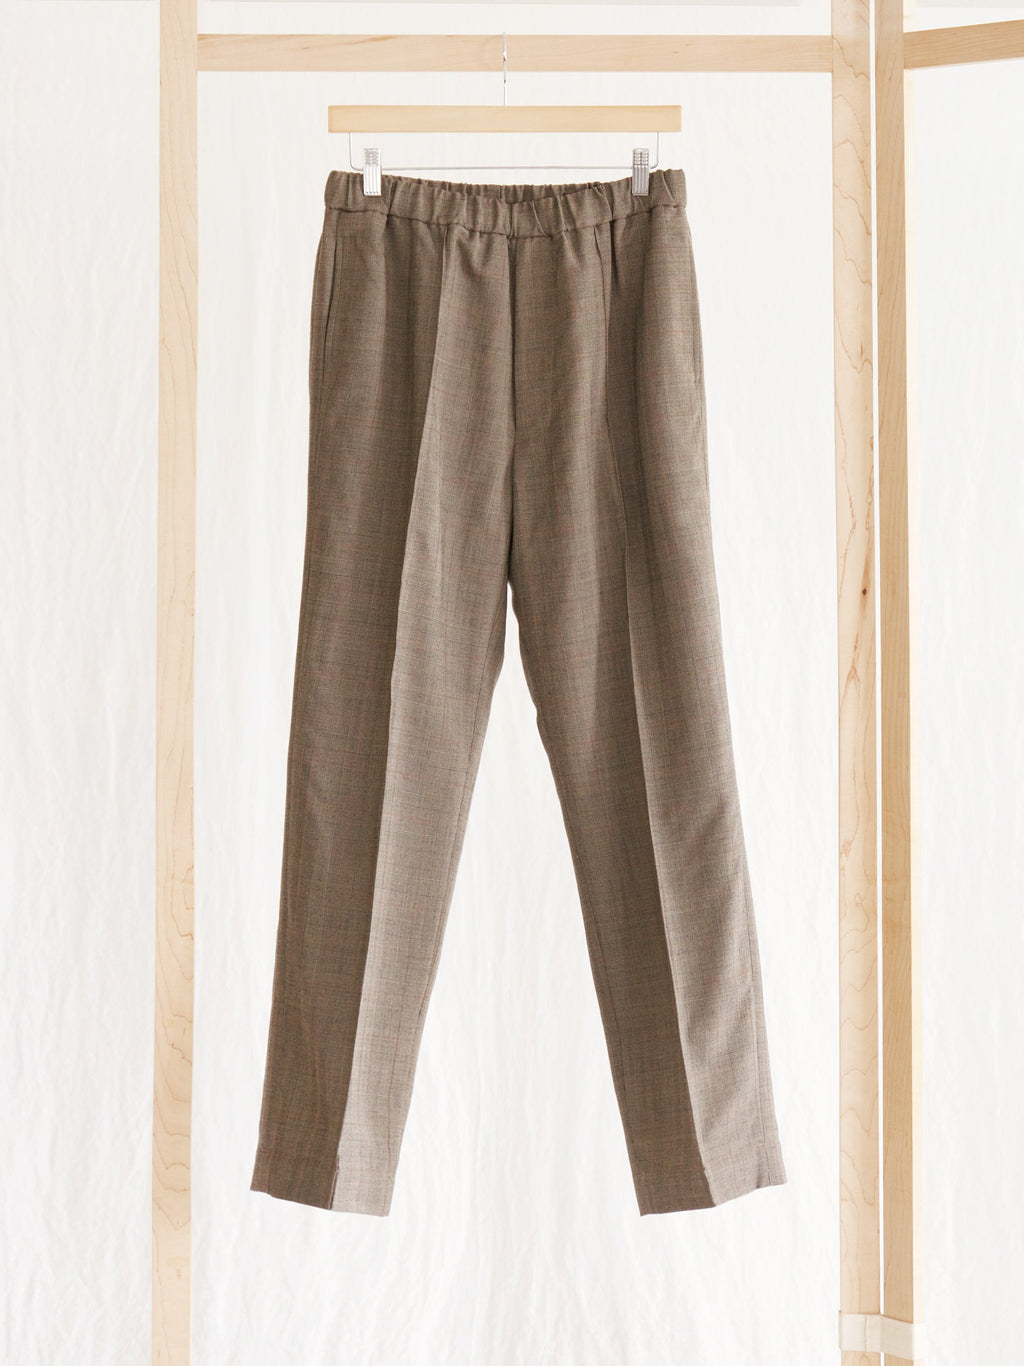 Namu Shop - Kaptain Sunshine Brown Glen Plaid Crease Tucked Easy Pants